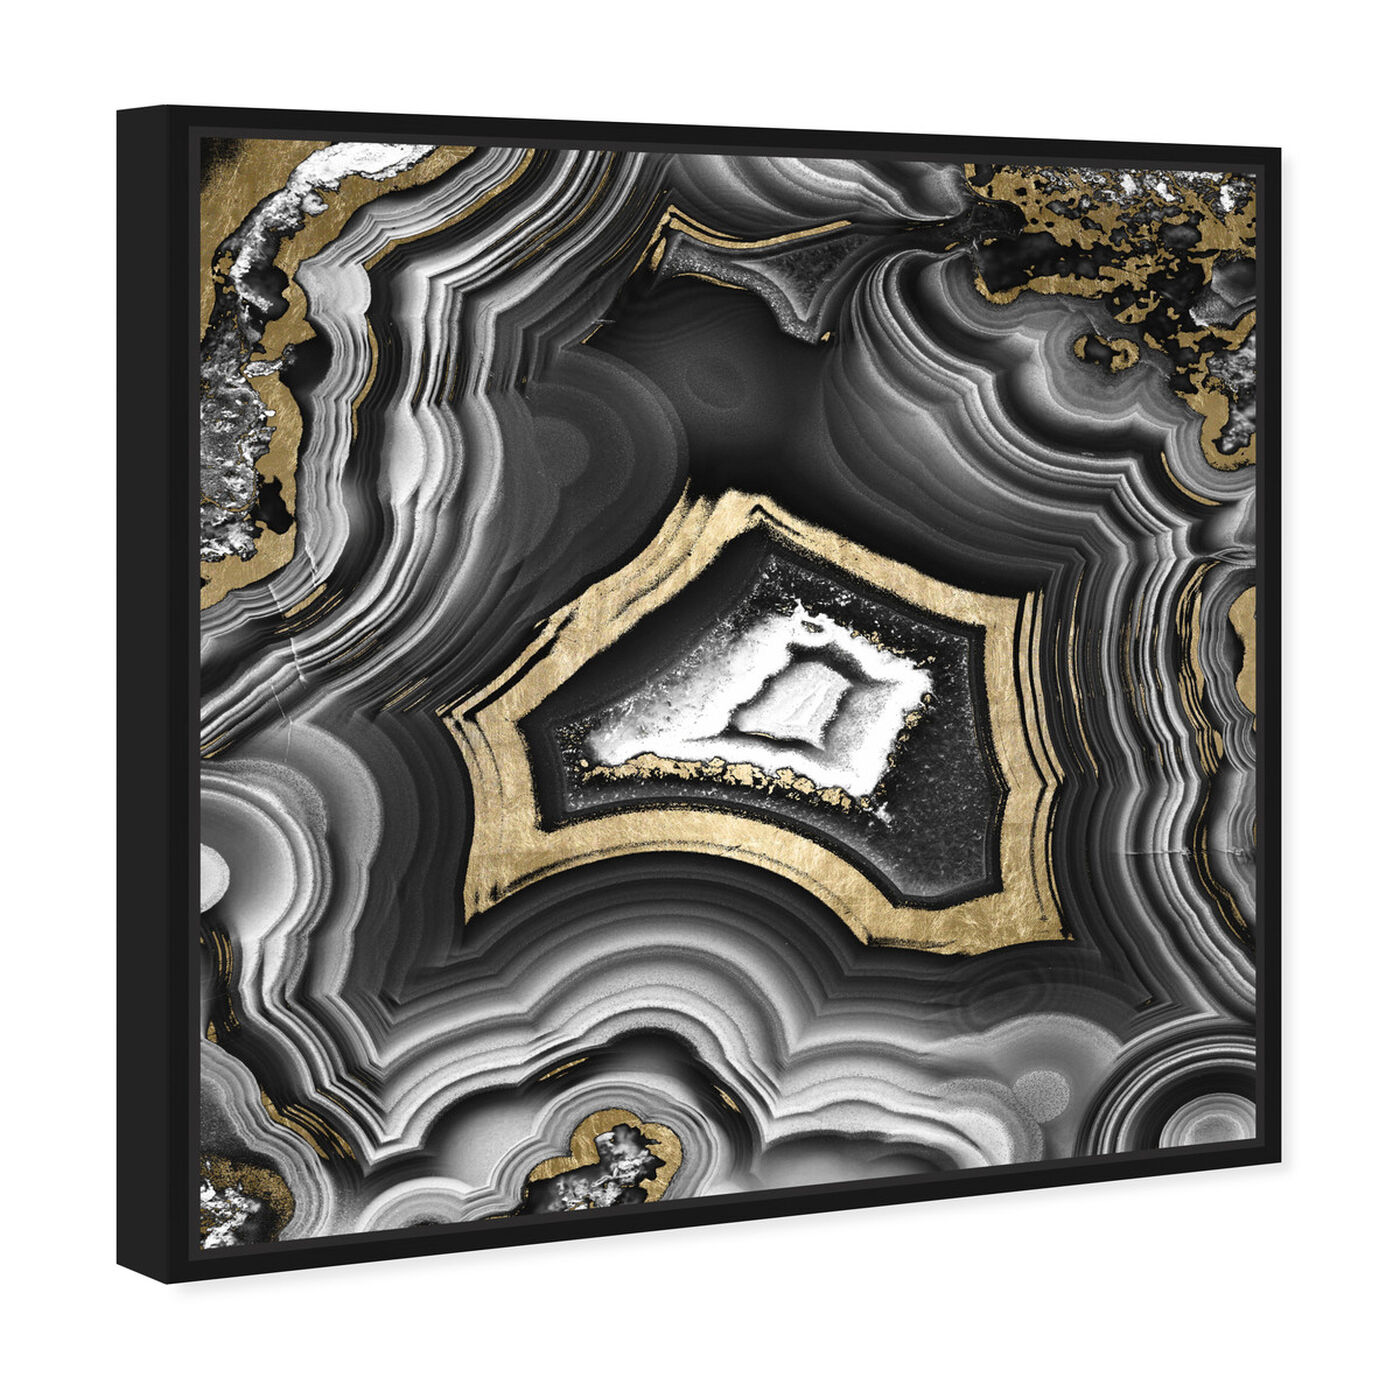 Angled view of Adoregeo Square featuring abstract and crystals art.